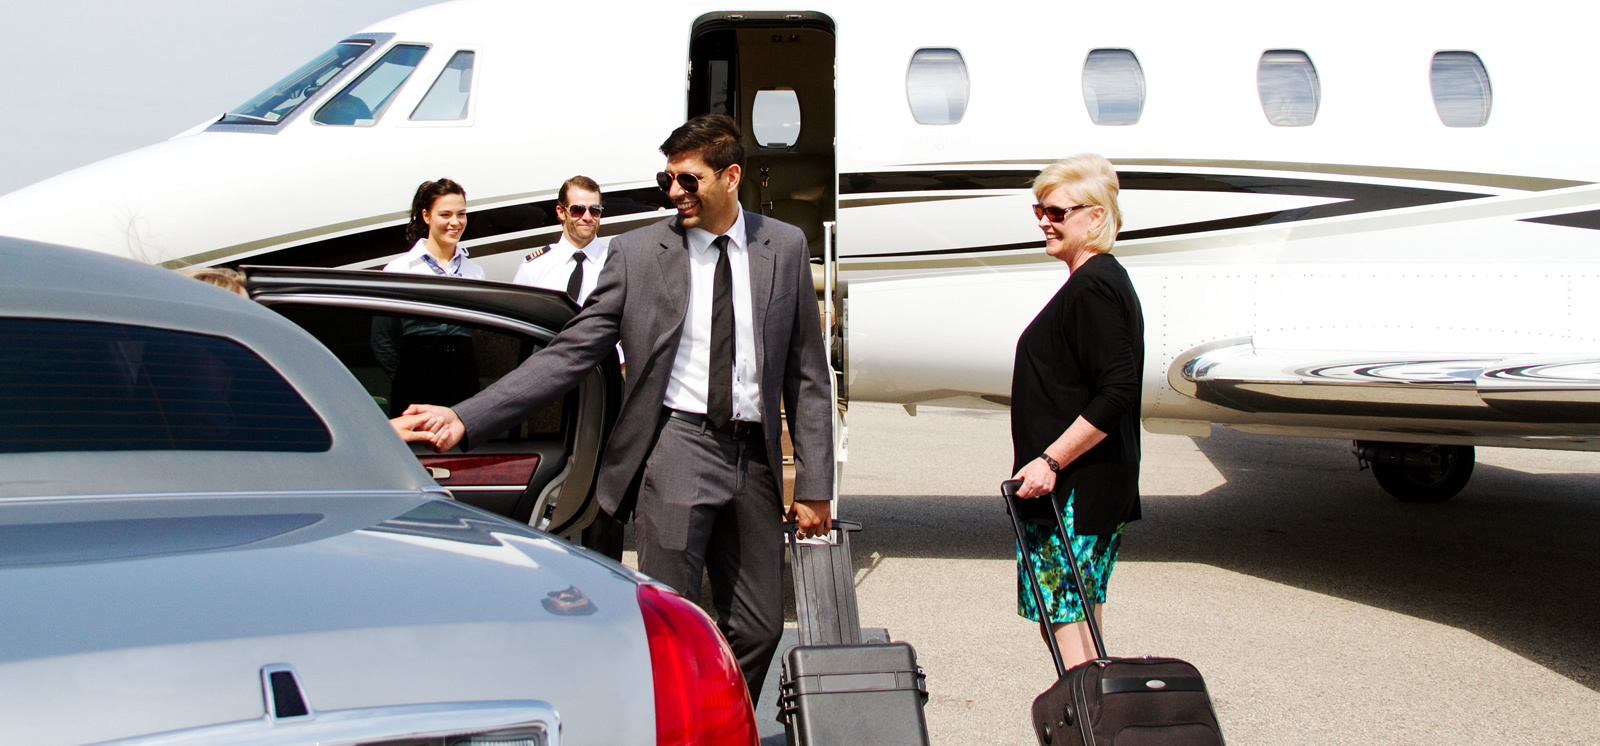 High Profile Individual Leaving His Chauffeur To Board A Private Jet, With Security Personnel Present